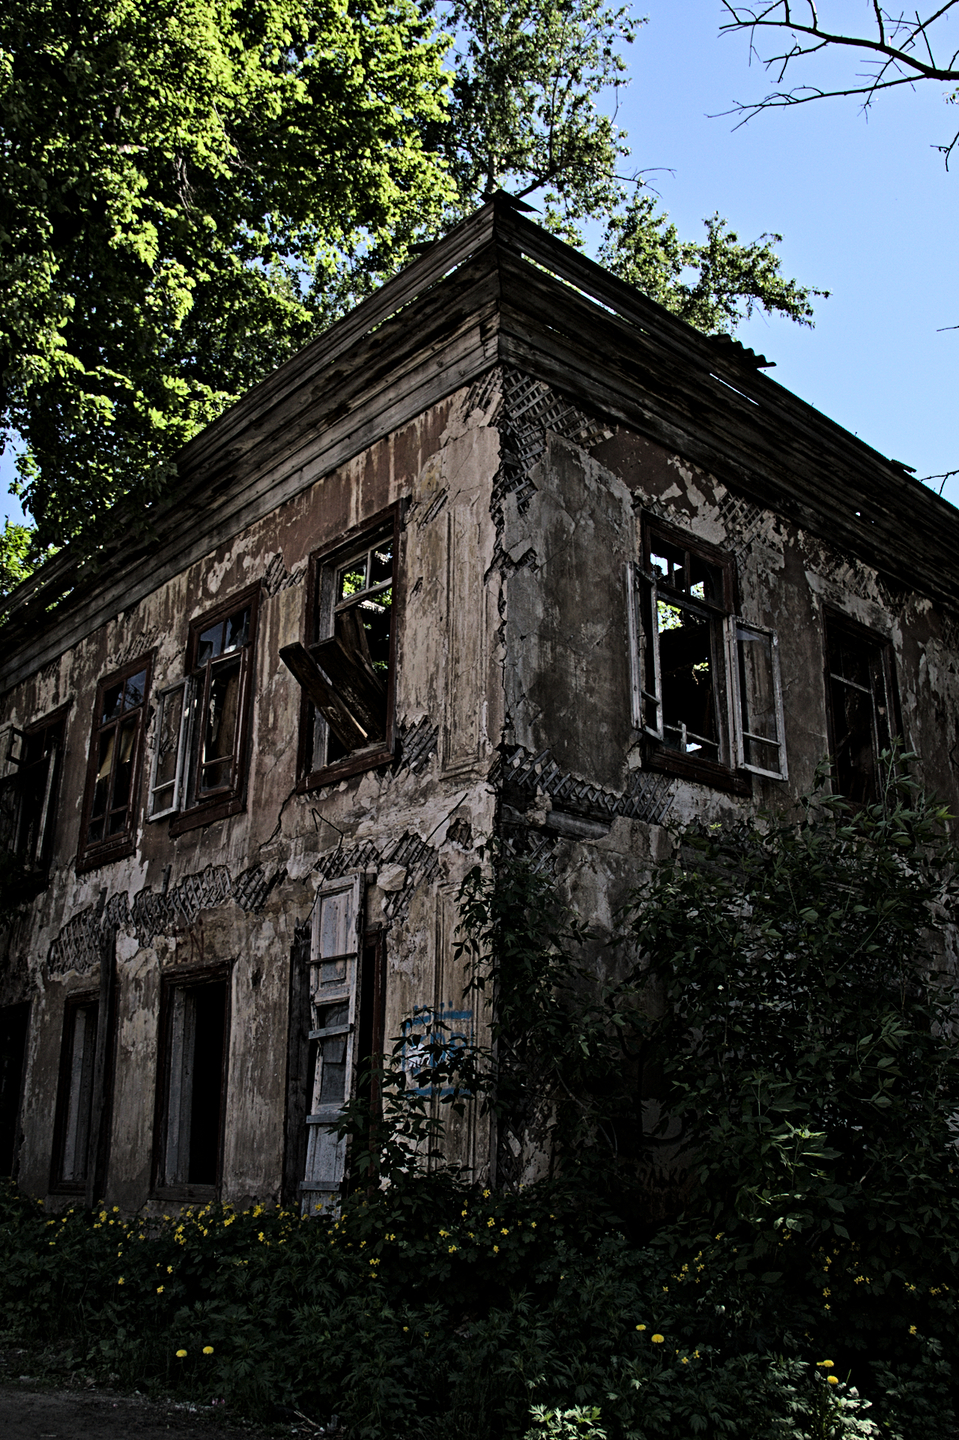 Deserted old house